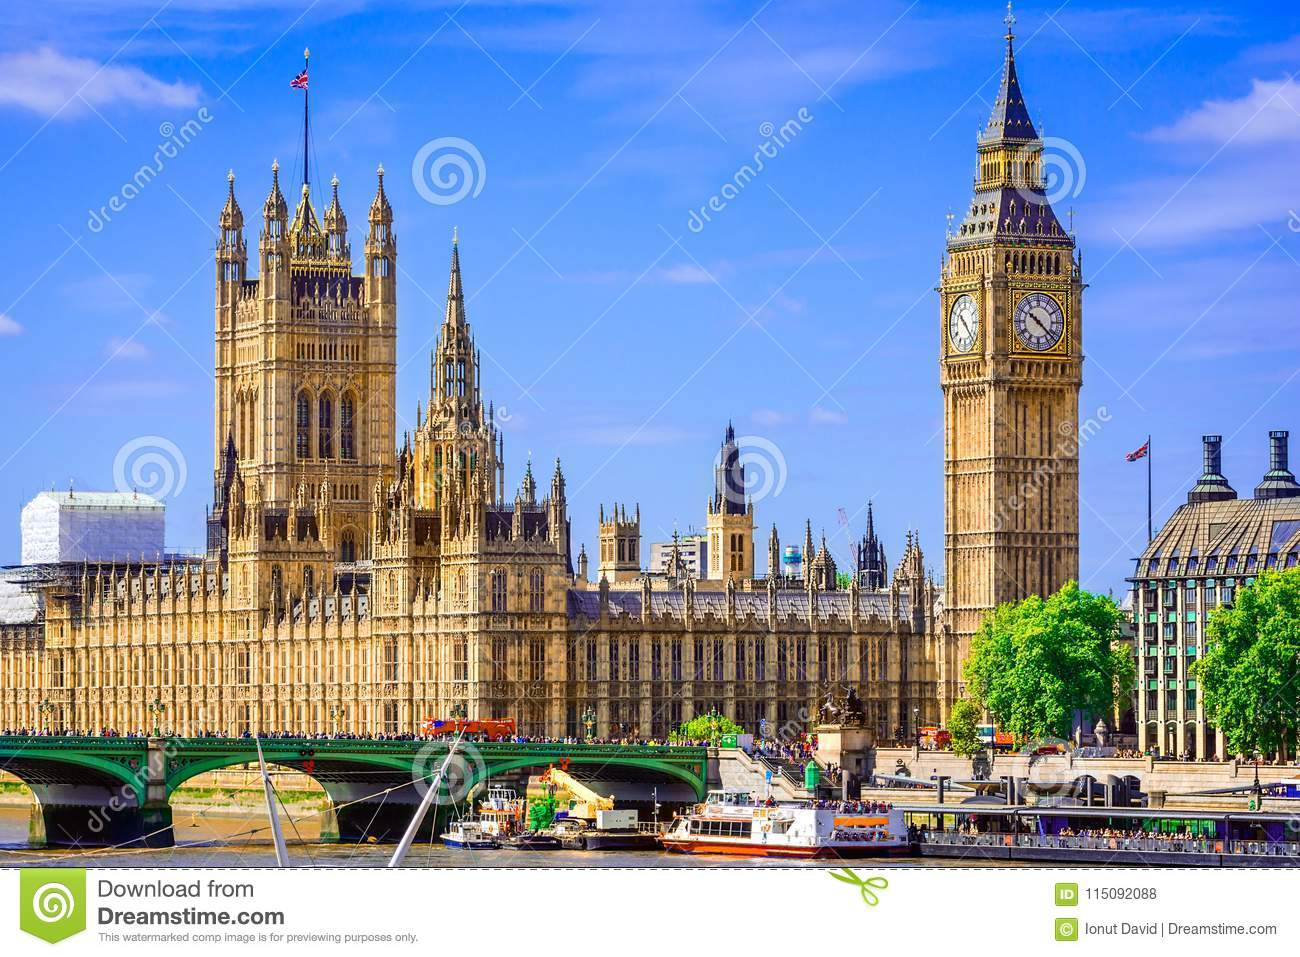 London, The United Kingdom of Great Britain: Palace of Westminster bridge